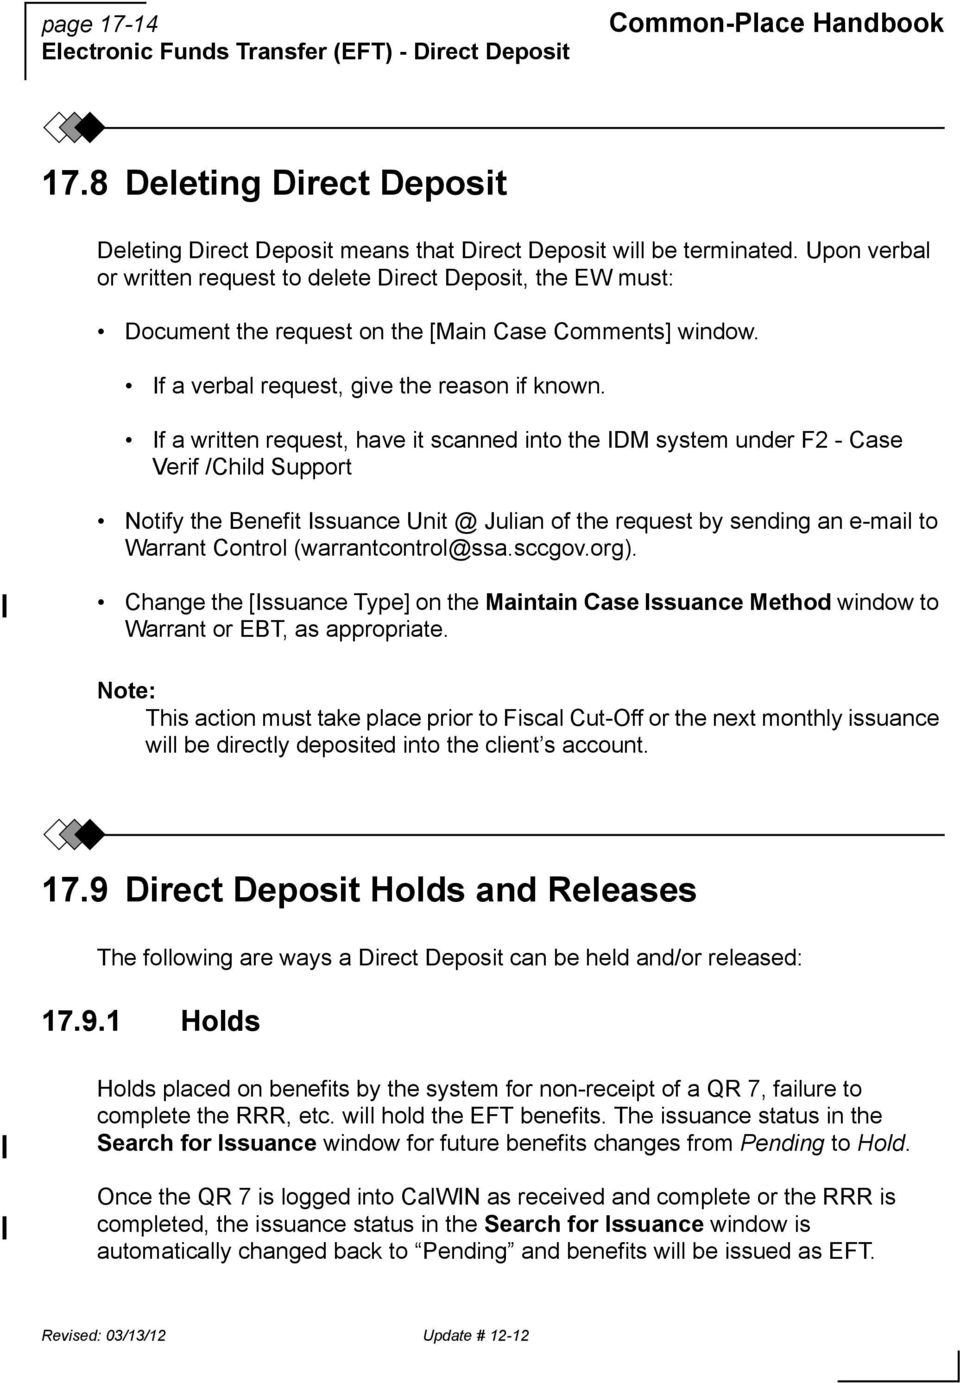 17. electronic funds transfer (eft) - direct deposit - pdf